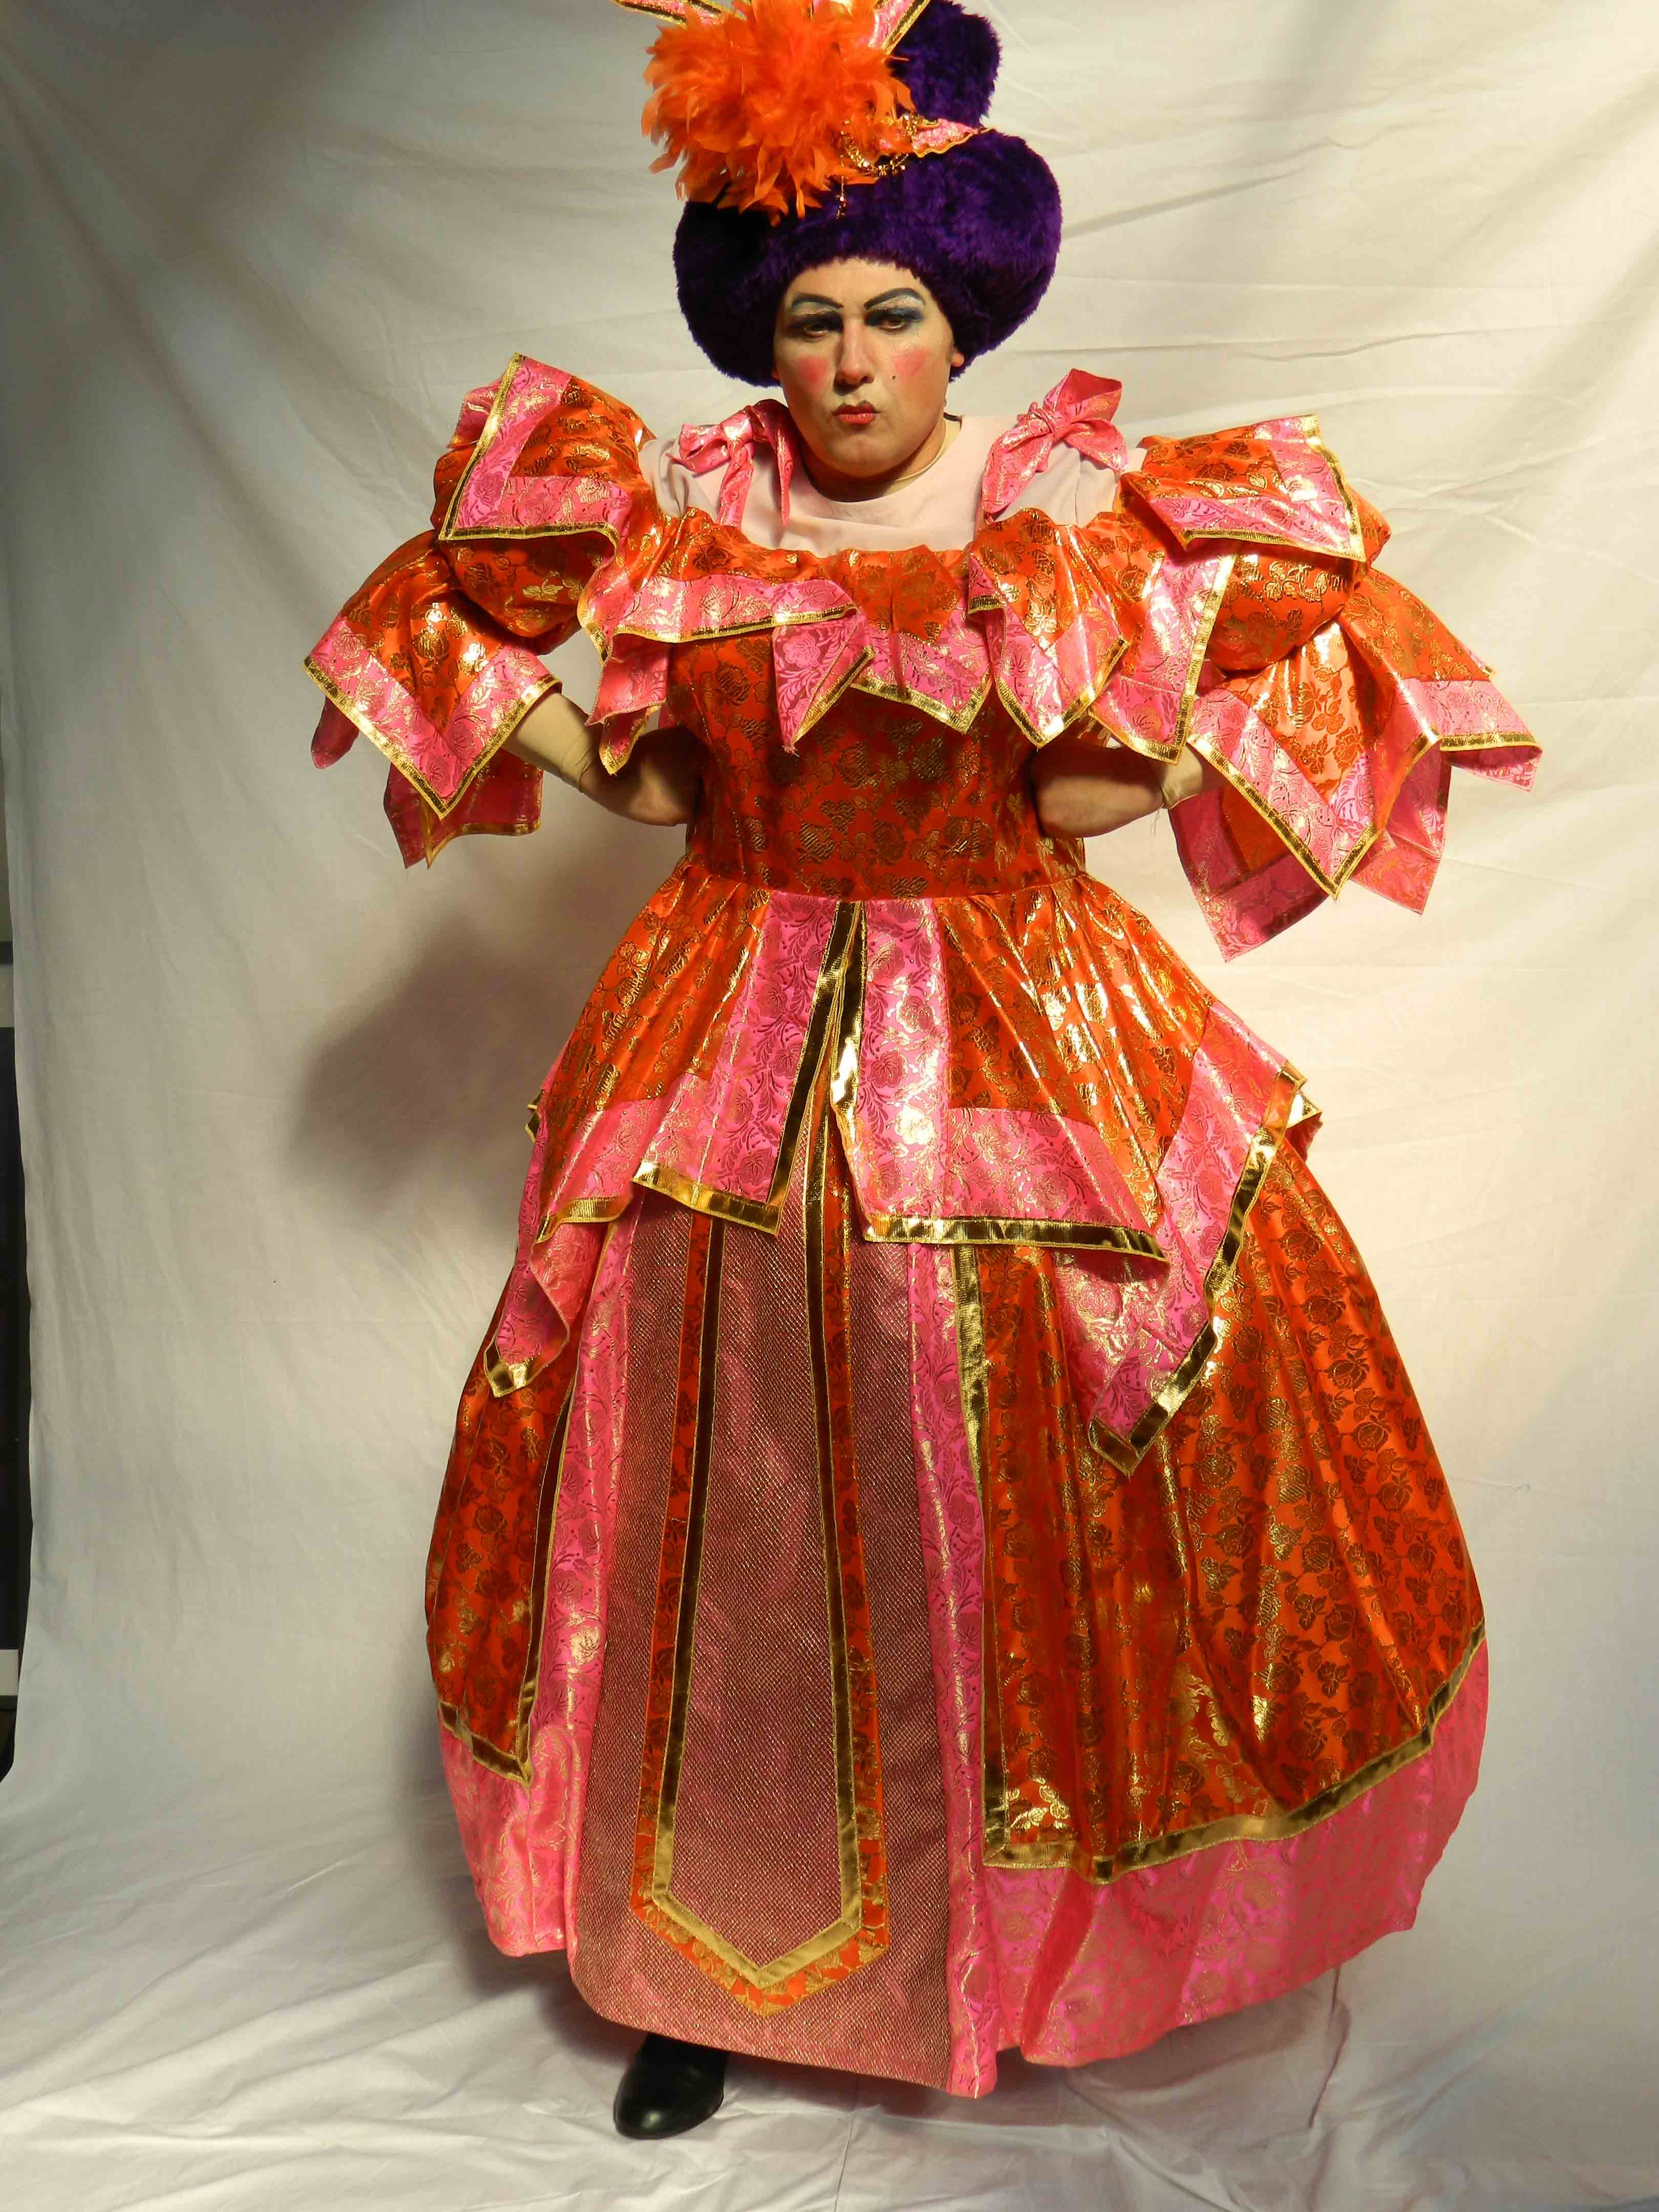 Panto Dame - Pink Sunrise Ball